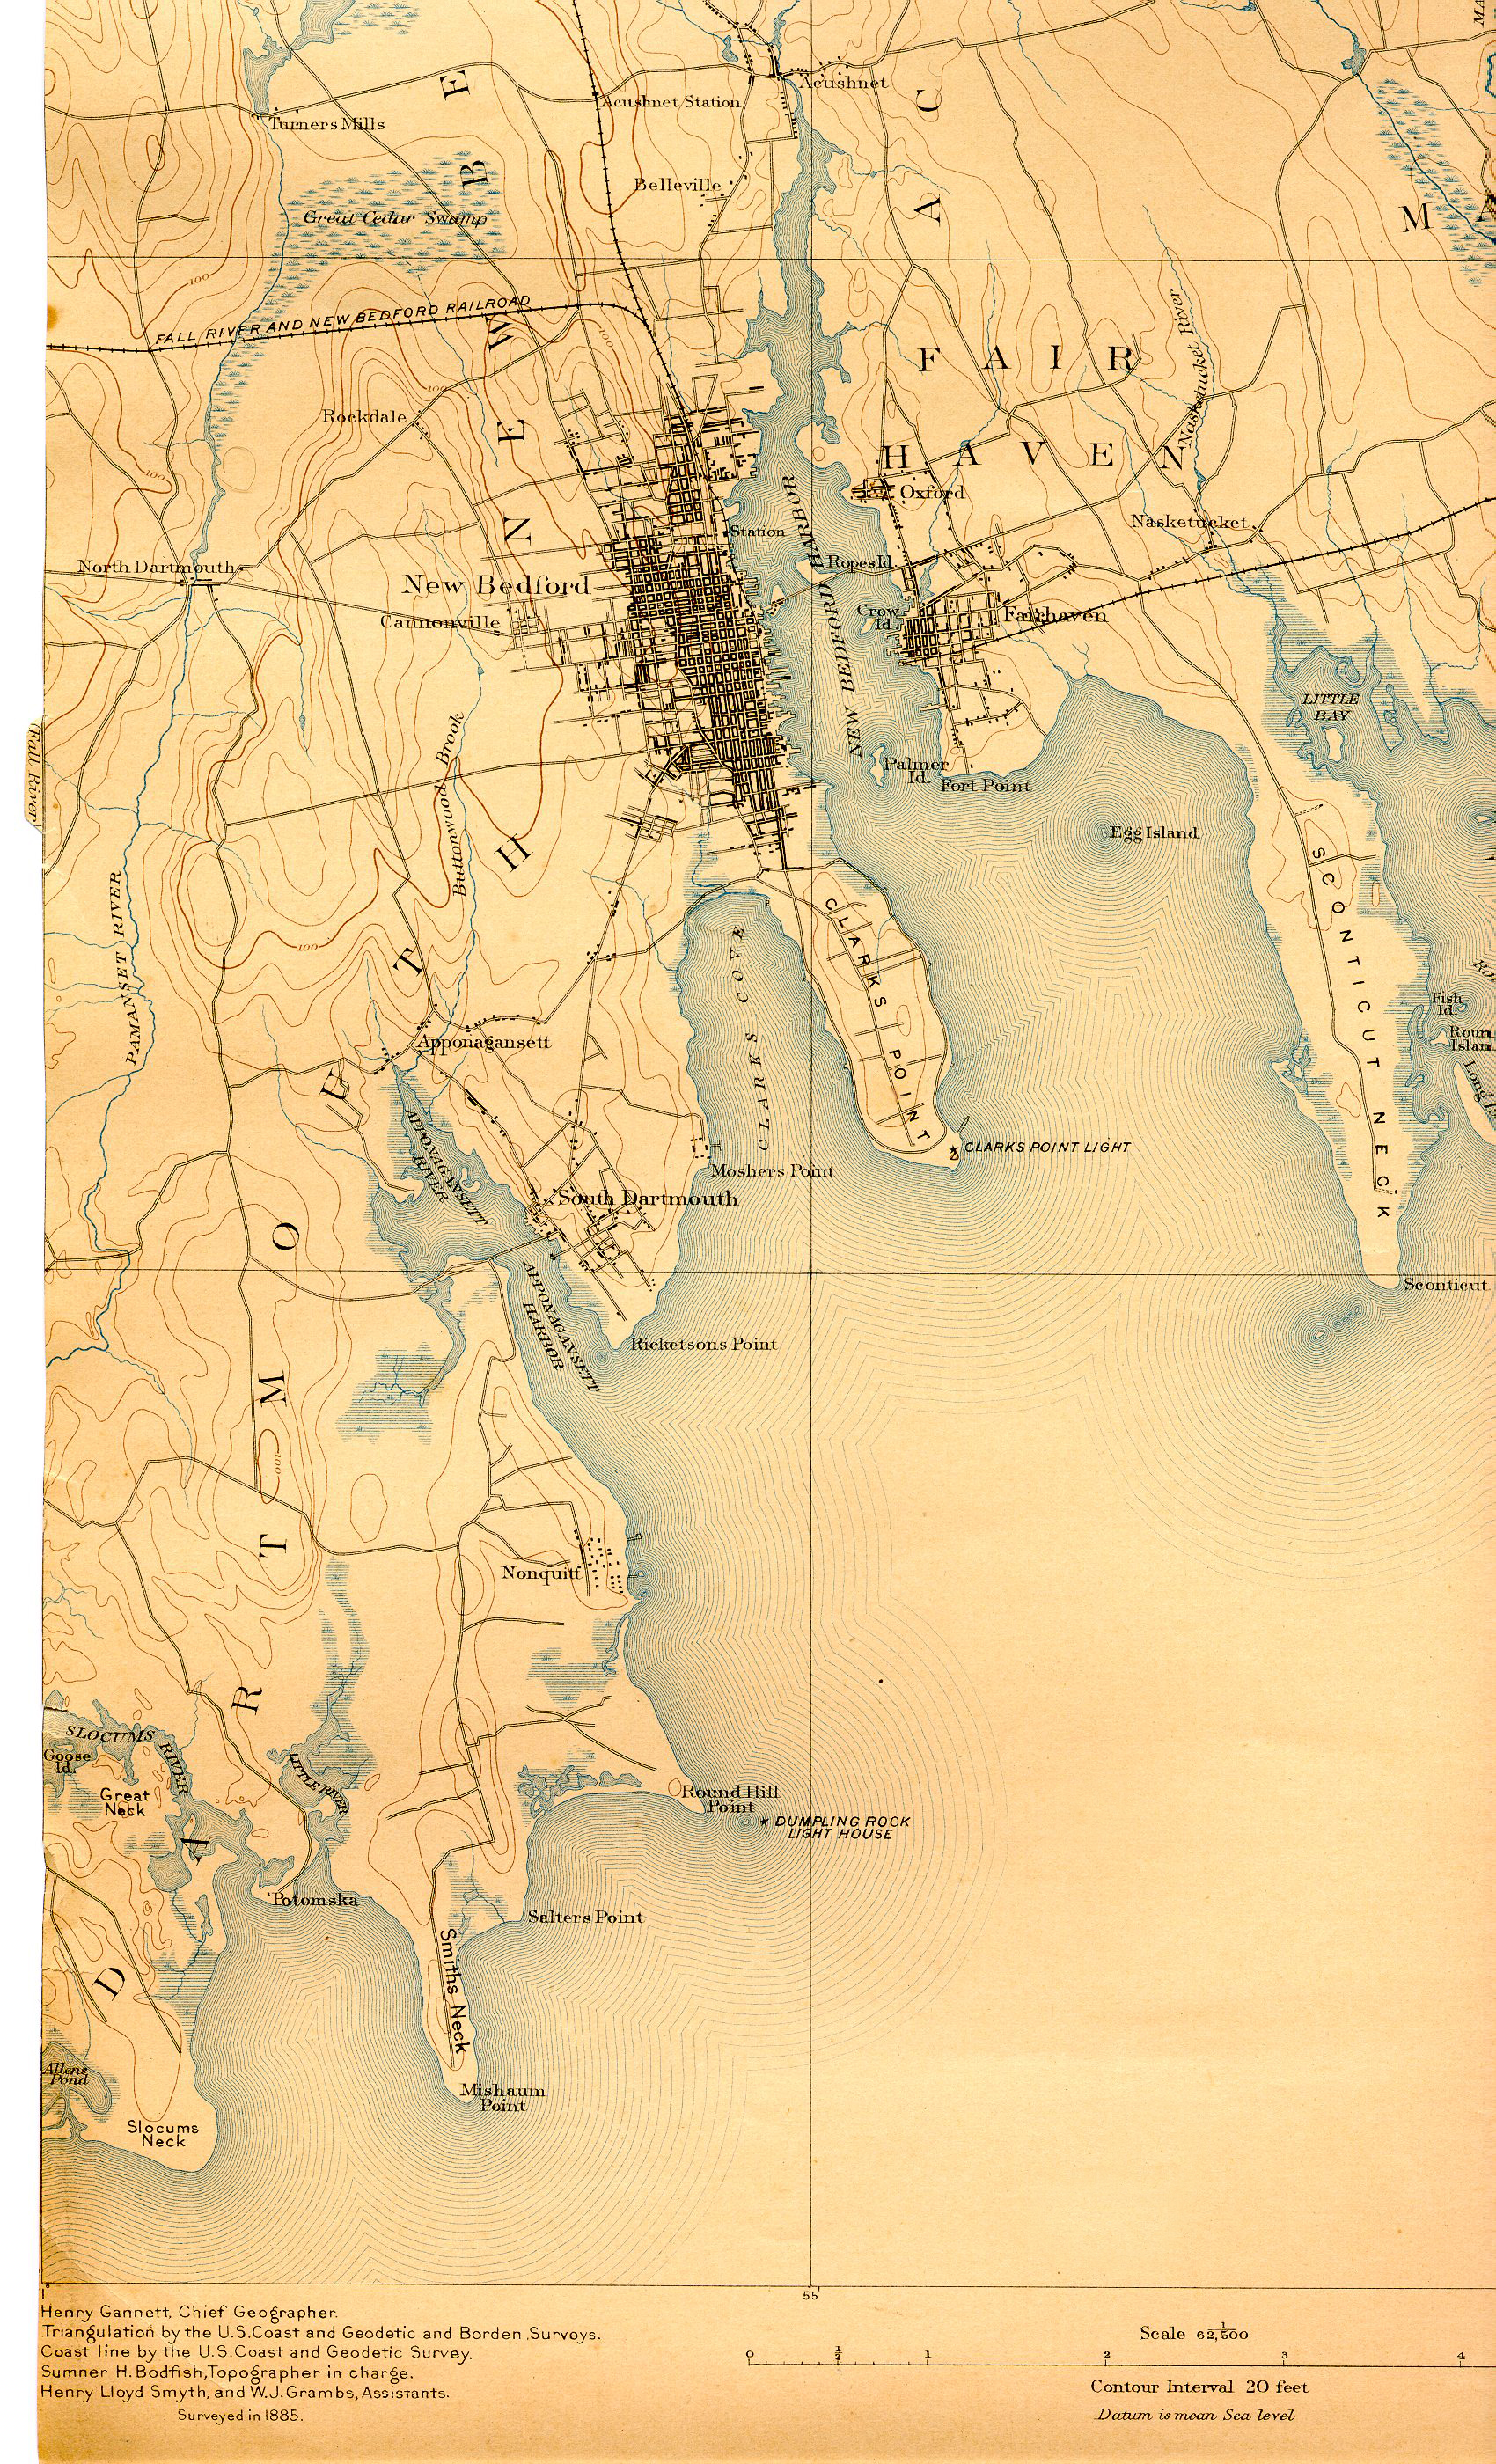 1893 Topographical Map of South Dartmouth and West New ... on old colony map, sarnia map, salcombe map, devon england uk map, wichita st map, ft. mcmurray map, prairie view a&m map, london map, fishguard map, uc riverside map, miami of ohio map, texas a&m kingsville map, hartlepool map, ottery st. mary map, north smithfield map, isle of wight map, dallas baptist map, u wisconsin map, alcorn state map, nova scotia map,